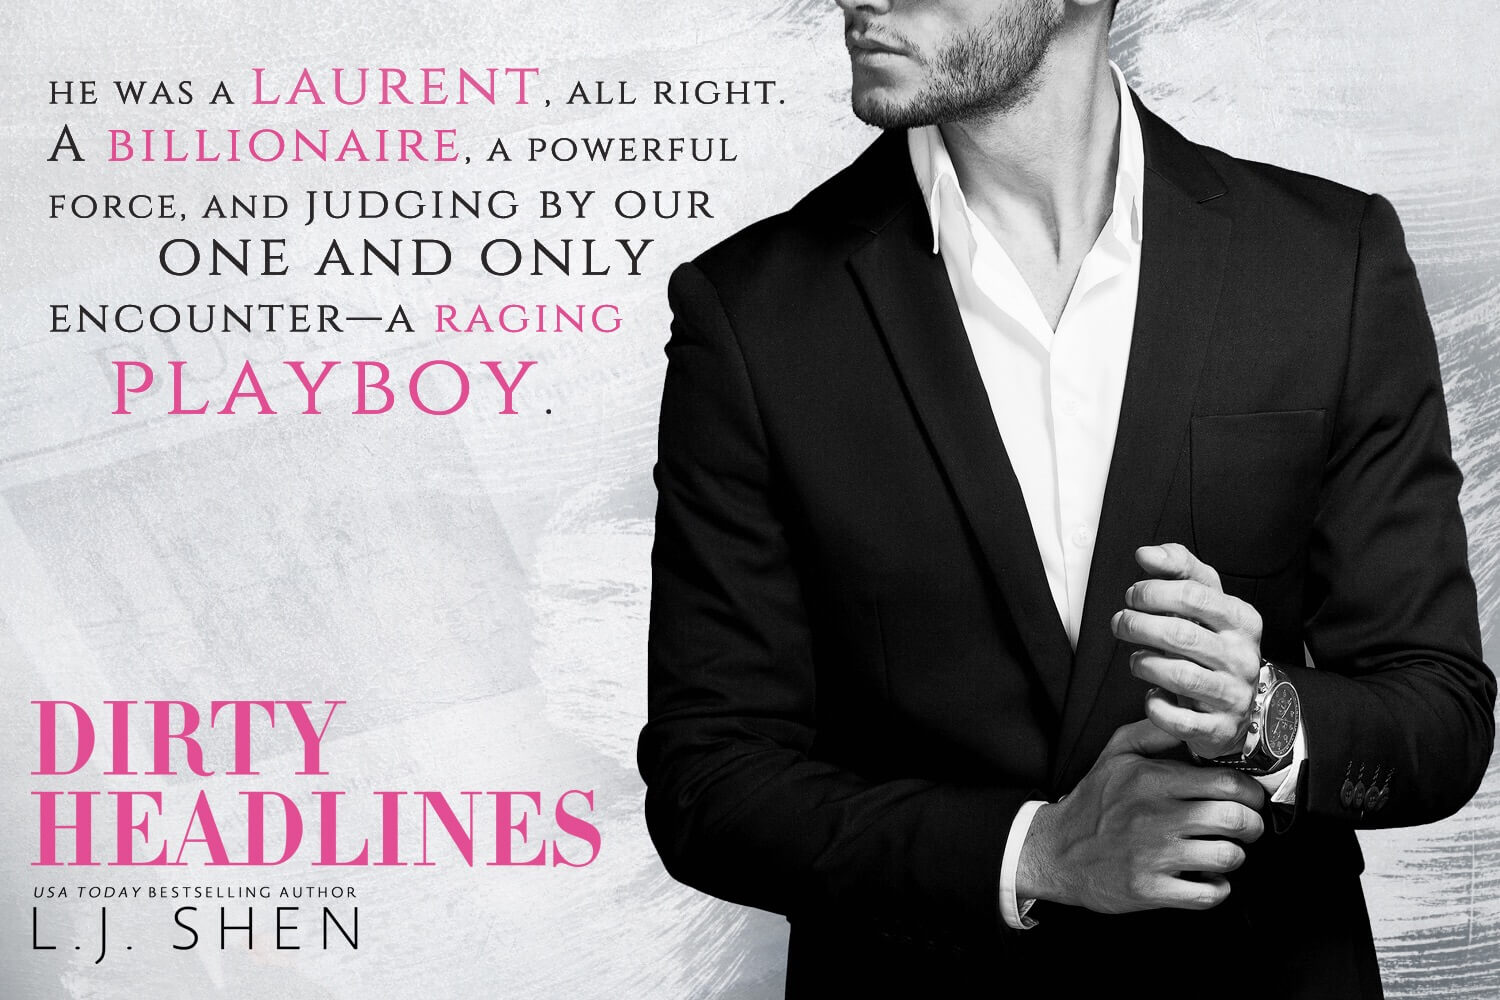 Teaser Tuesday * Dirty Headlines by LJ Shen * Coming September 7th *